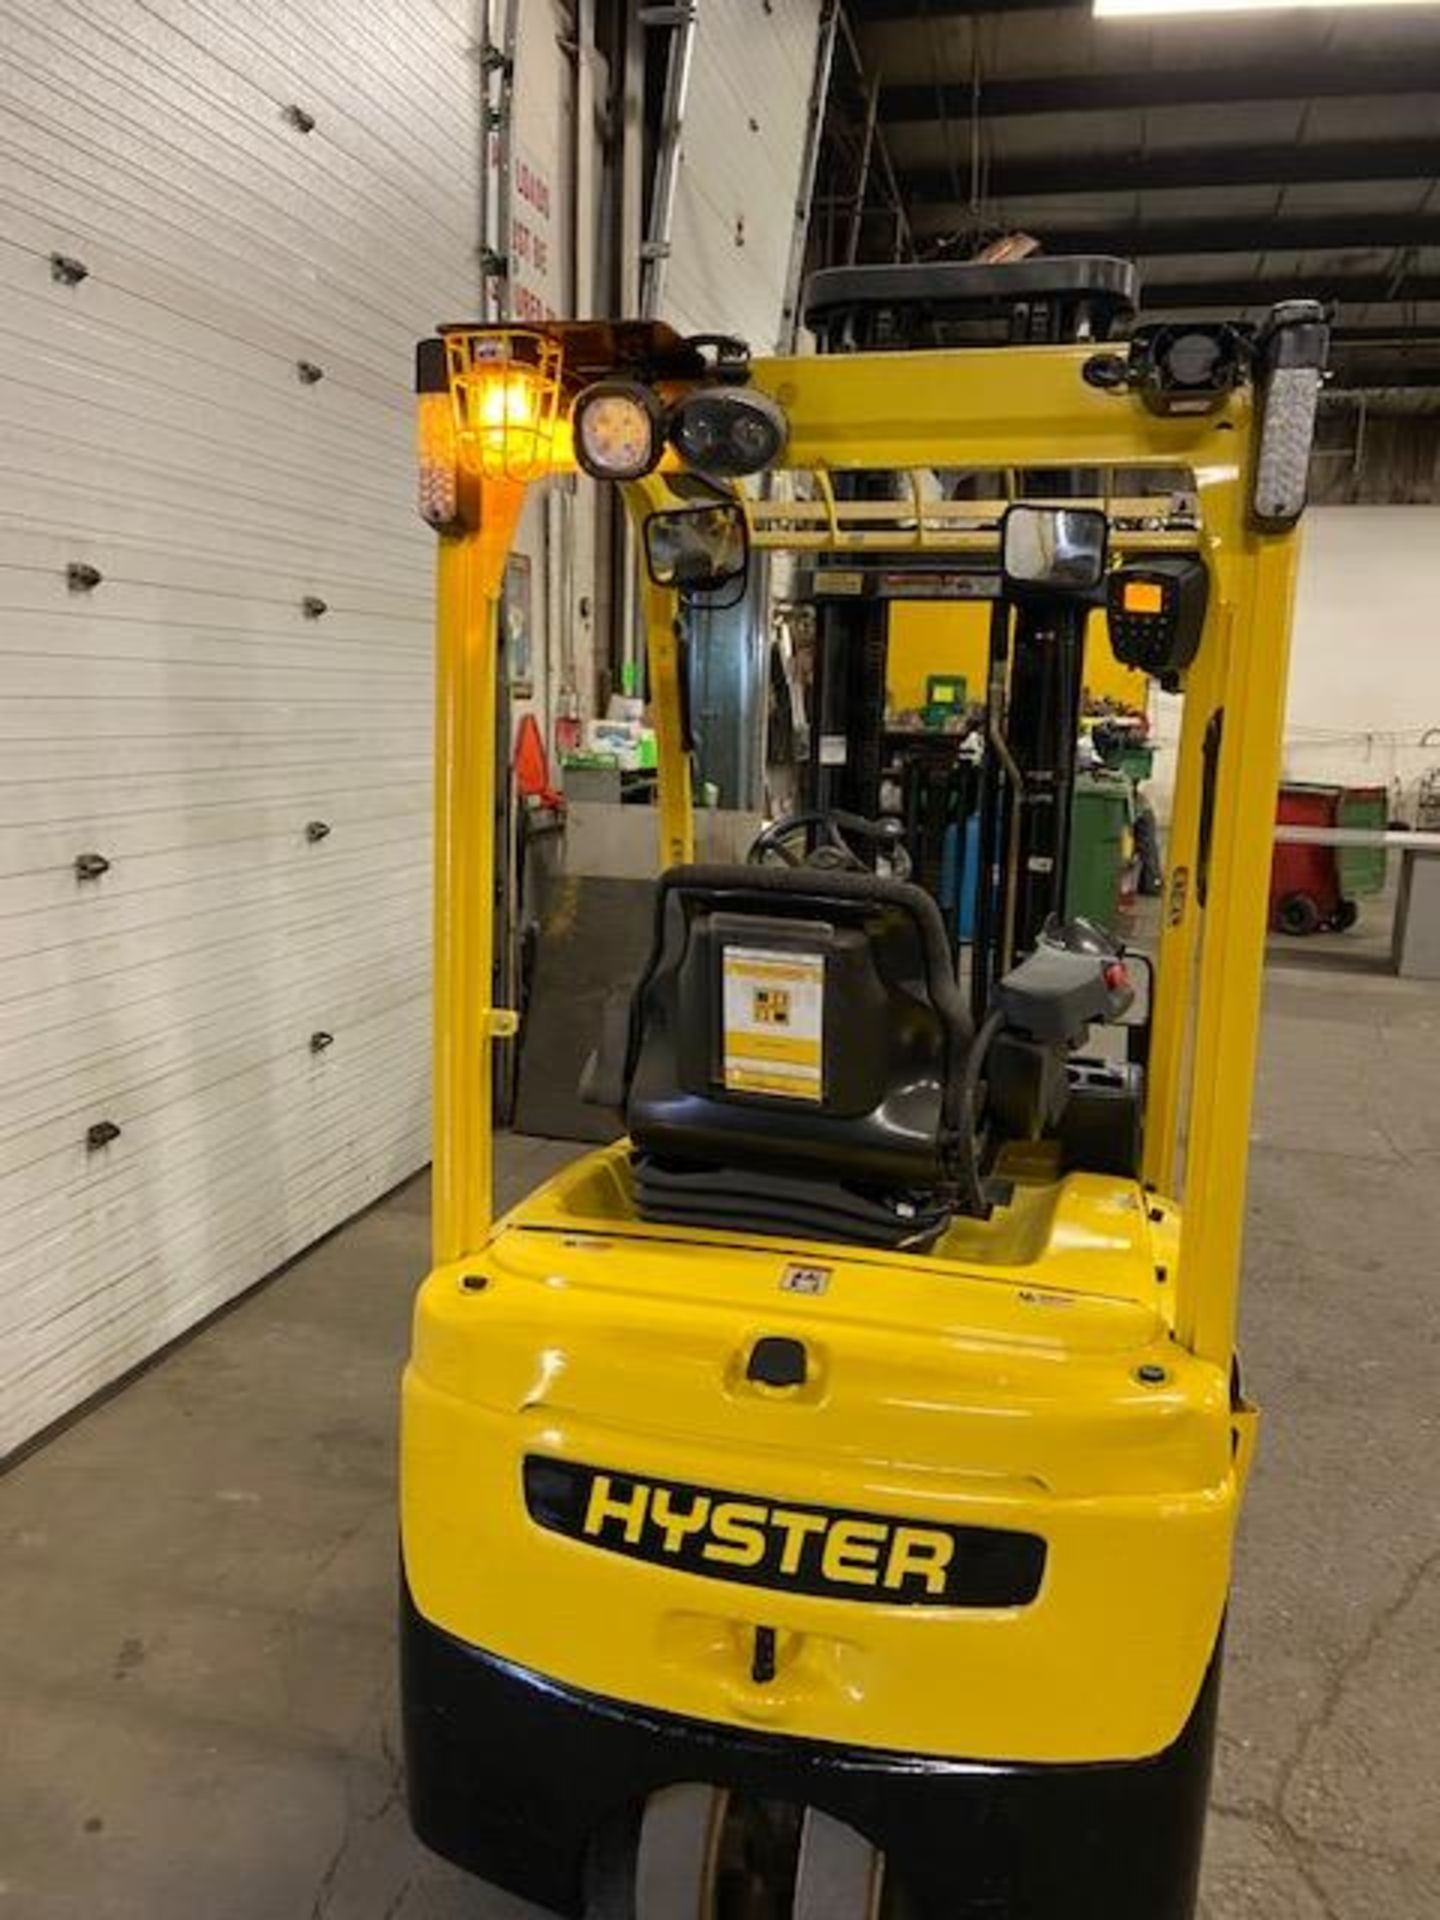 FREE CUSTOMS - 2013 Hyster 3000lbs Capacity 3-wheel Forklift Electric with 3-stage mast with - Image 2 of 3